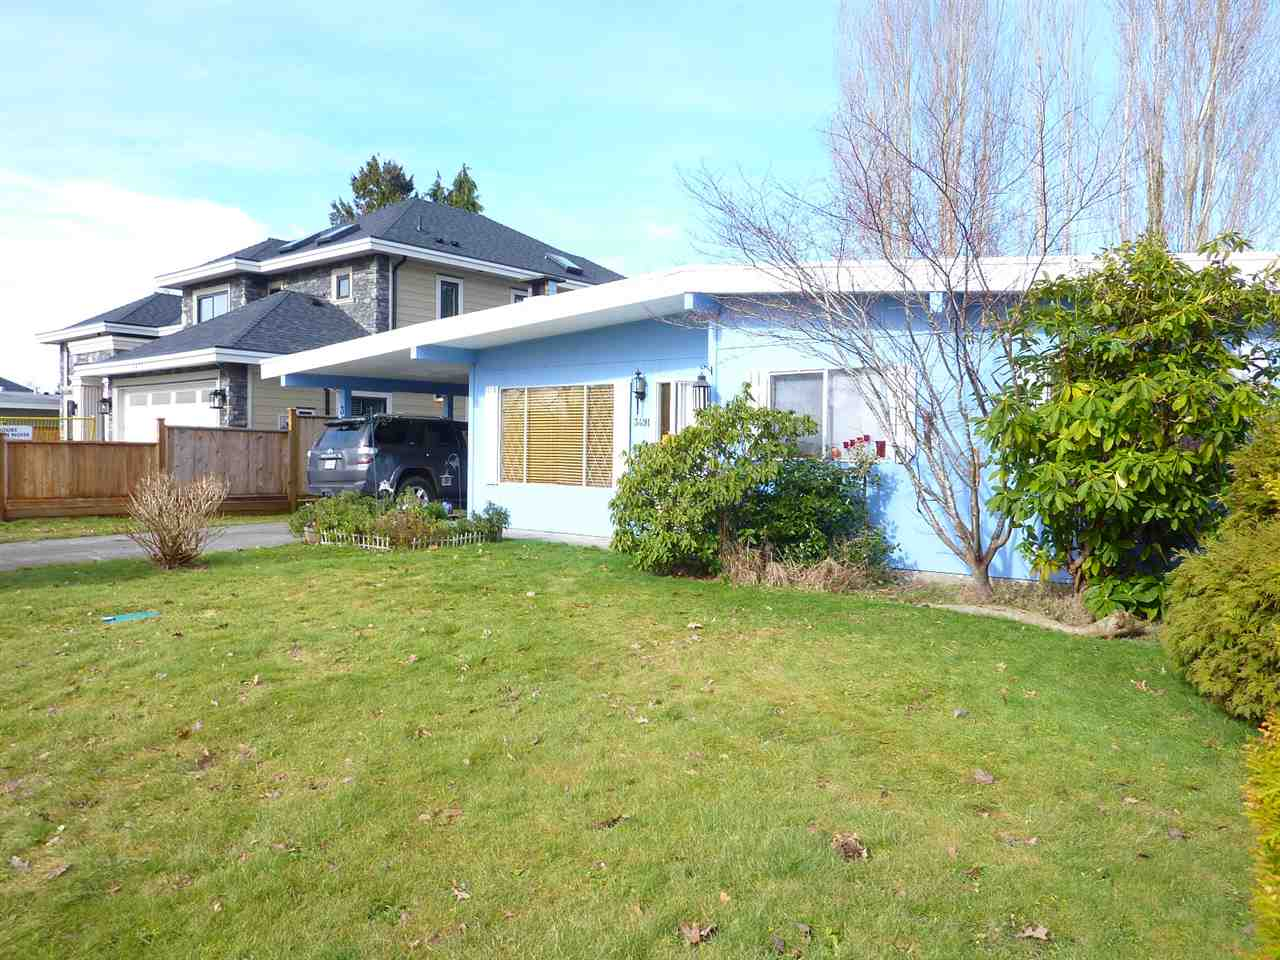 Photo 3: 3491 SPRINGFORD Avenue in Richmond: Steveston North House for sale : MLS® # R2139973